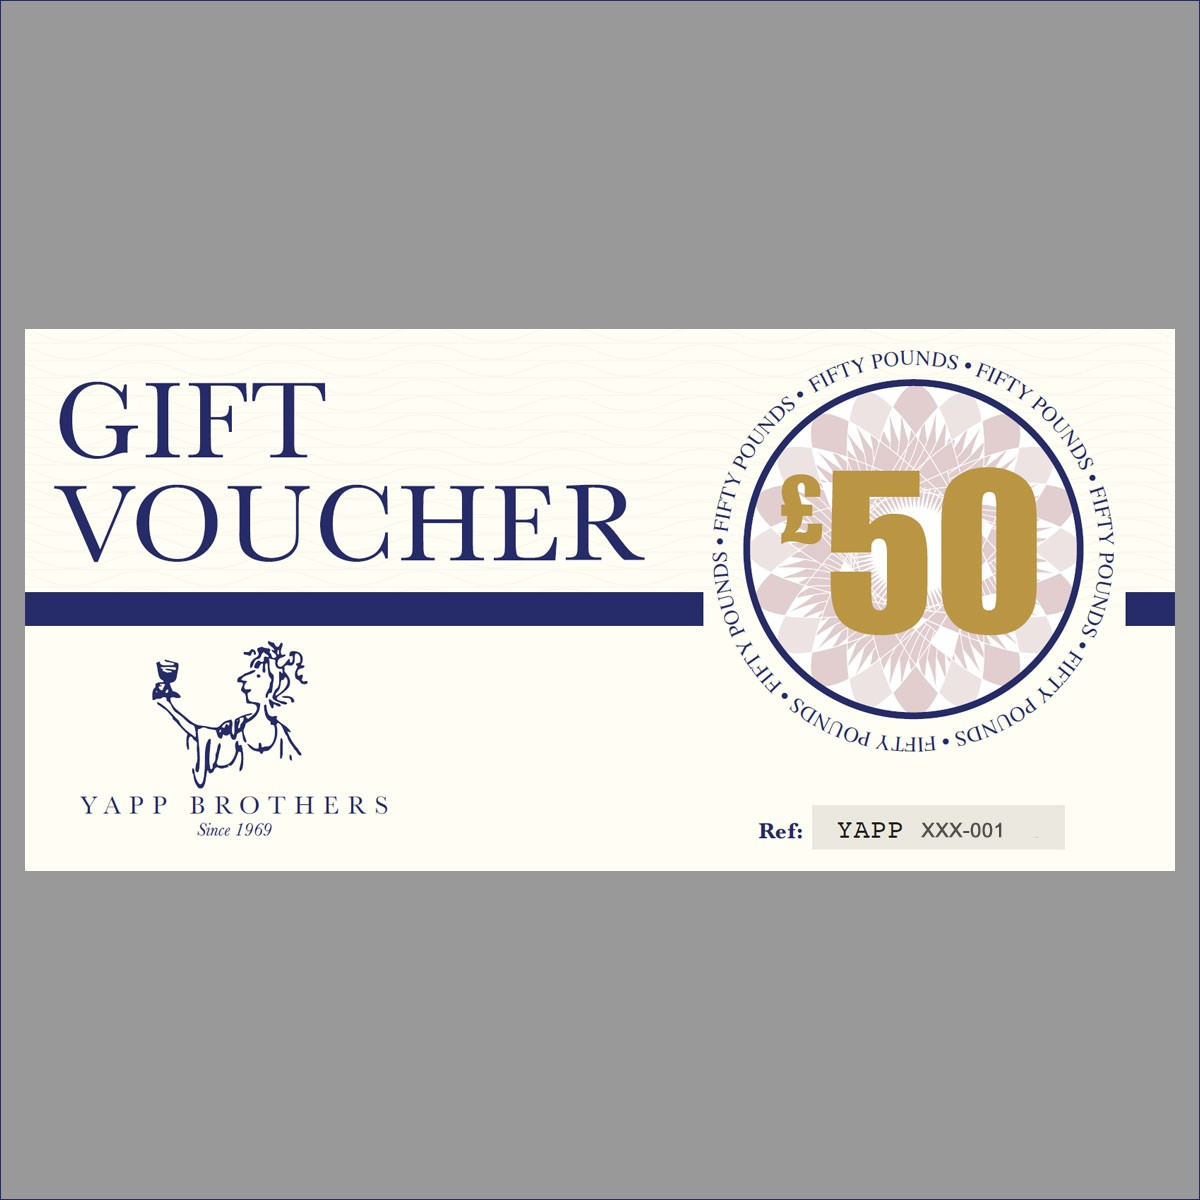 Yapp Brothers £50 Gift Voucher